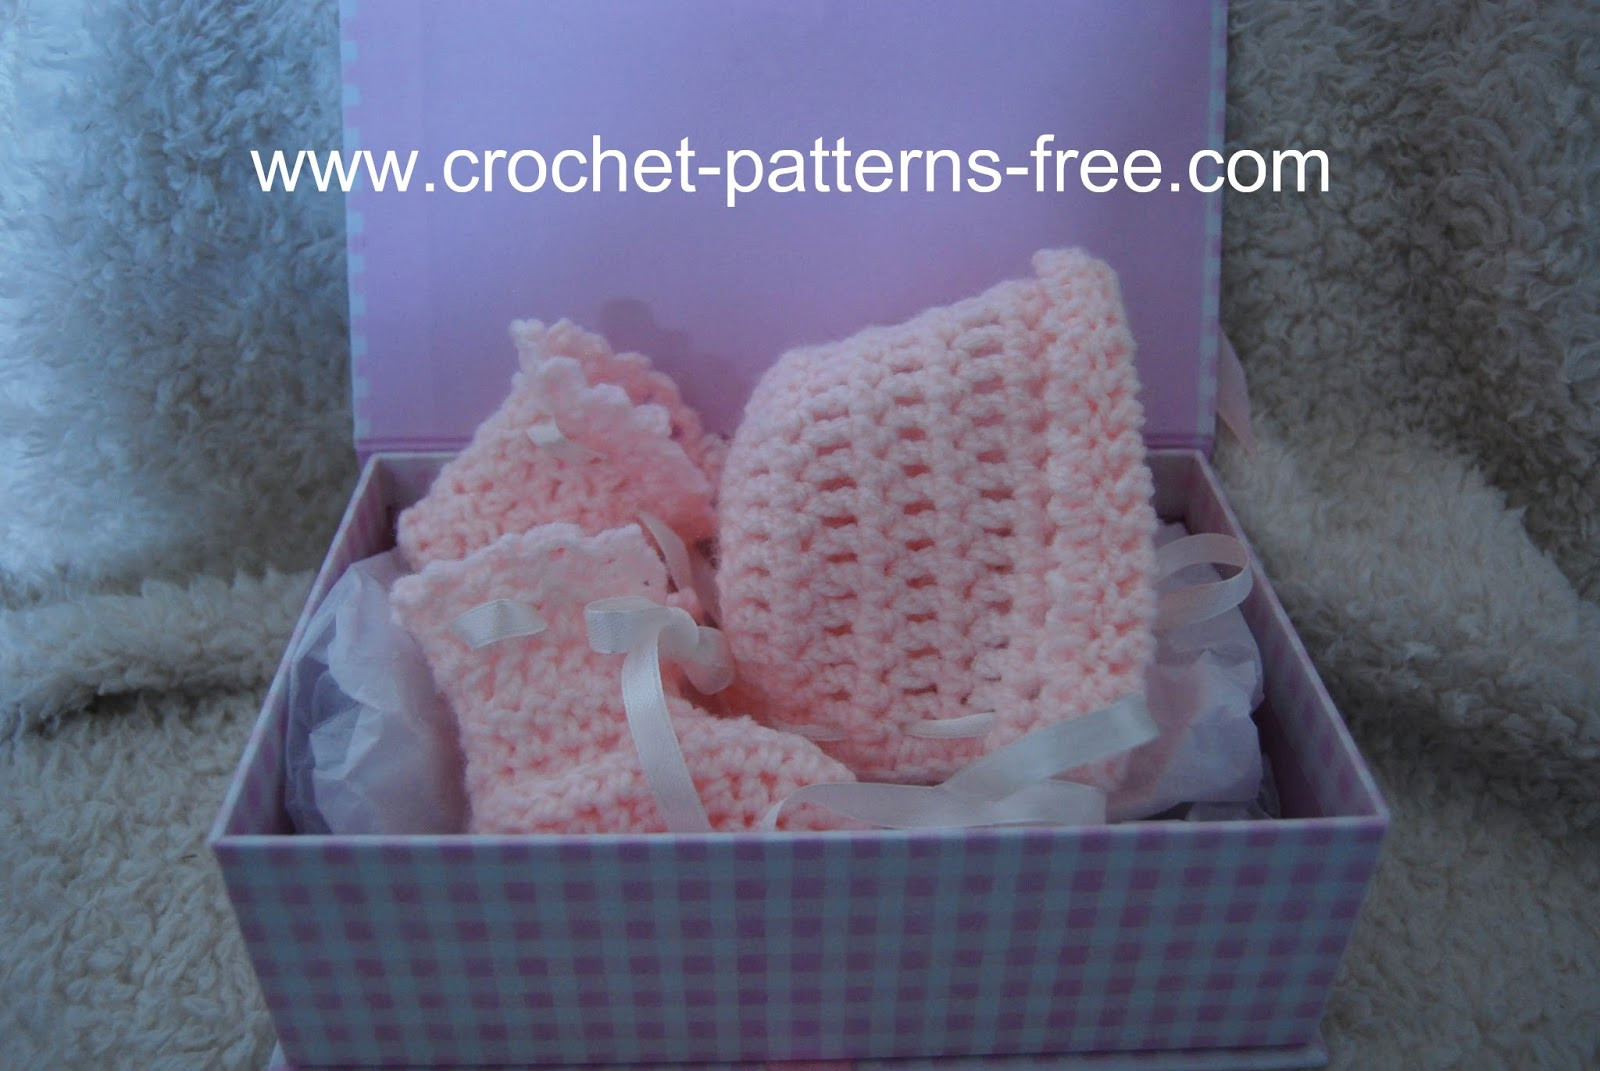 Beautiful Free Crochet Patterns Baby Booties Free Crochet Patterns for Newborns Of Unique 40 Photos Free Crochet Patterns for Newborns